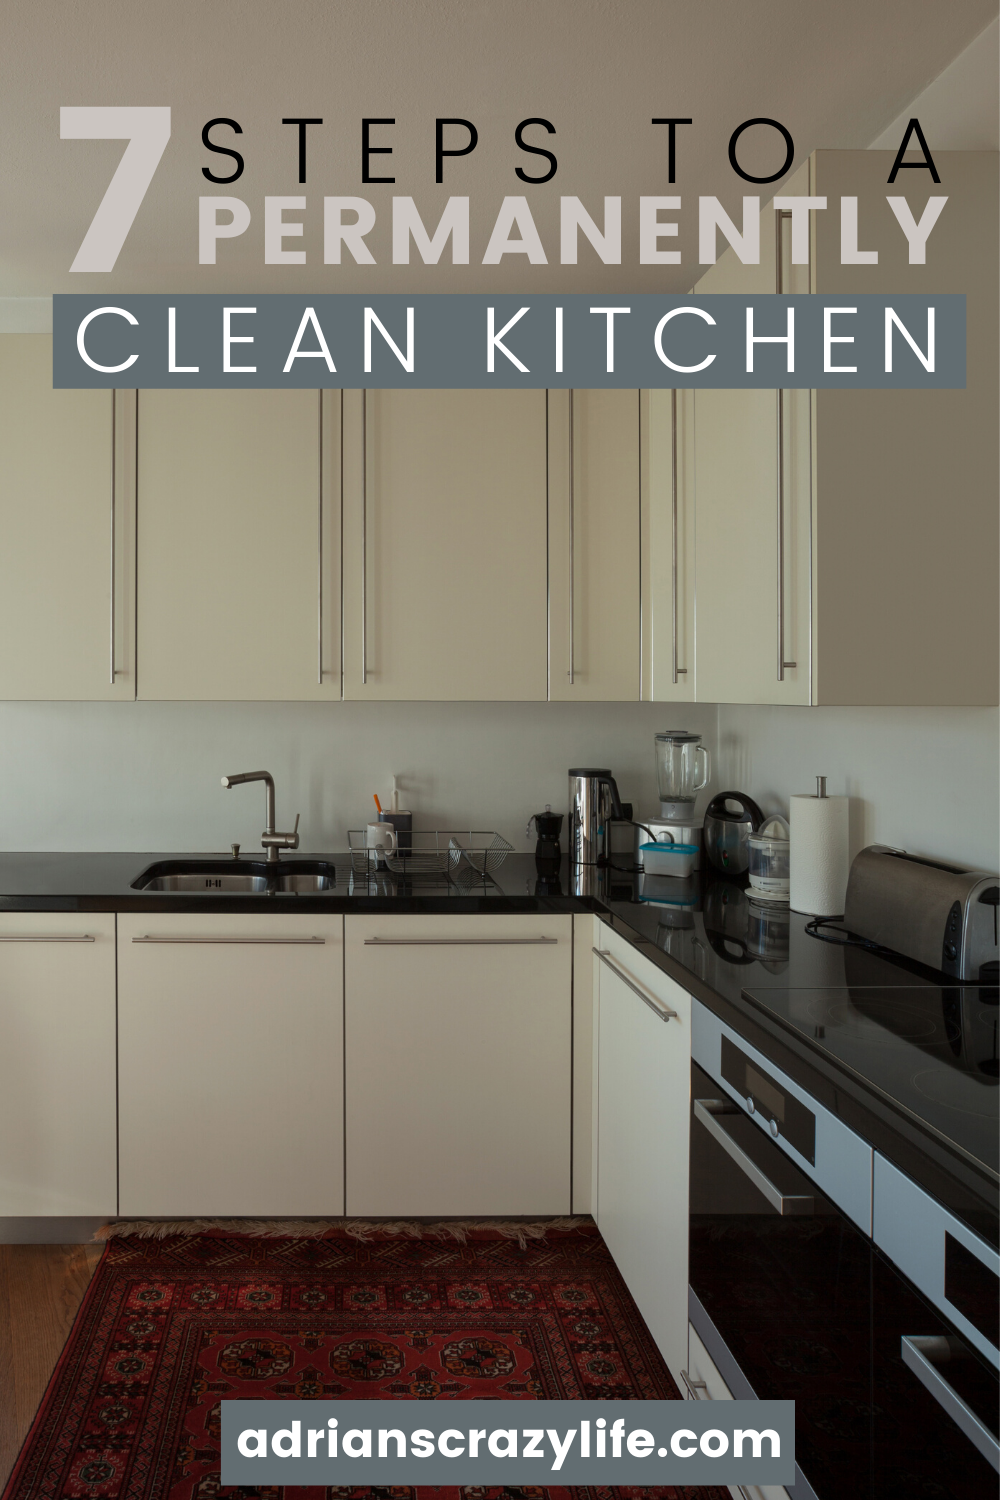 Pin On Keep Clean And Organized Tips And Tricks